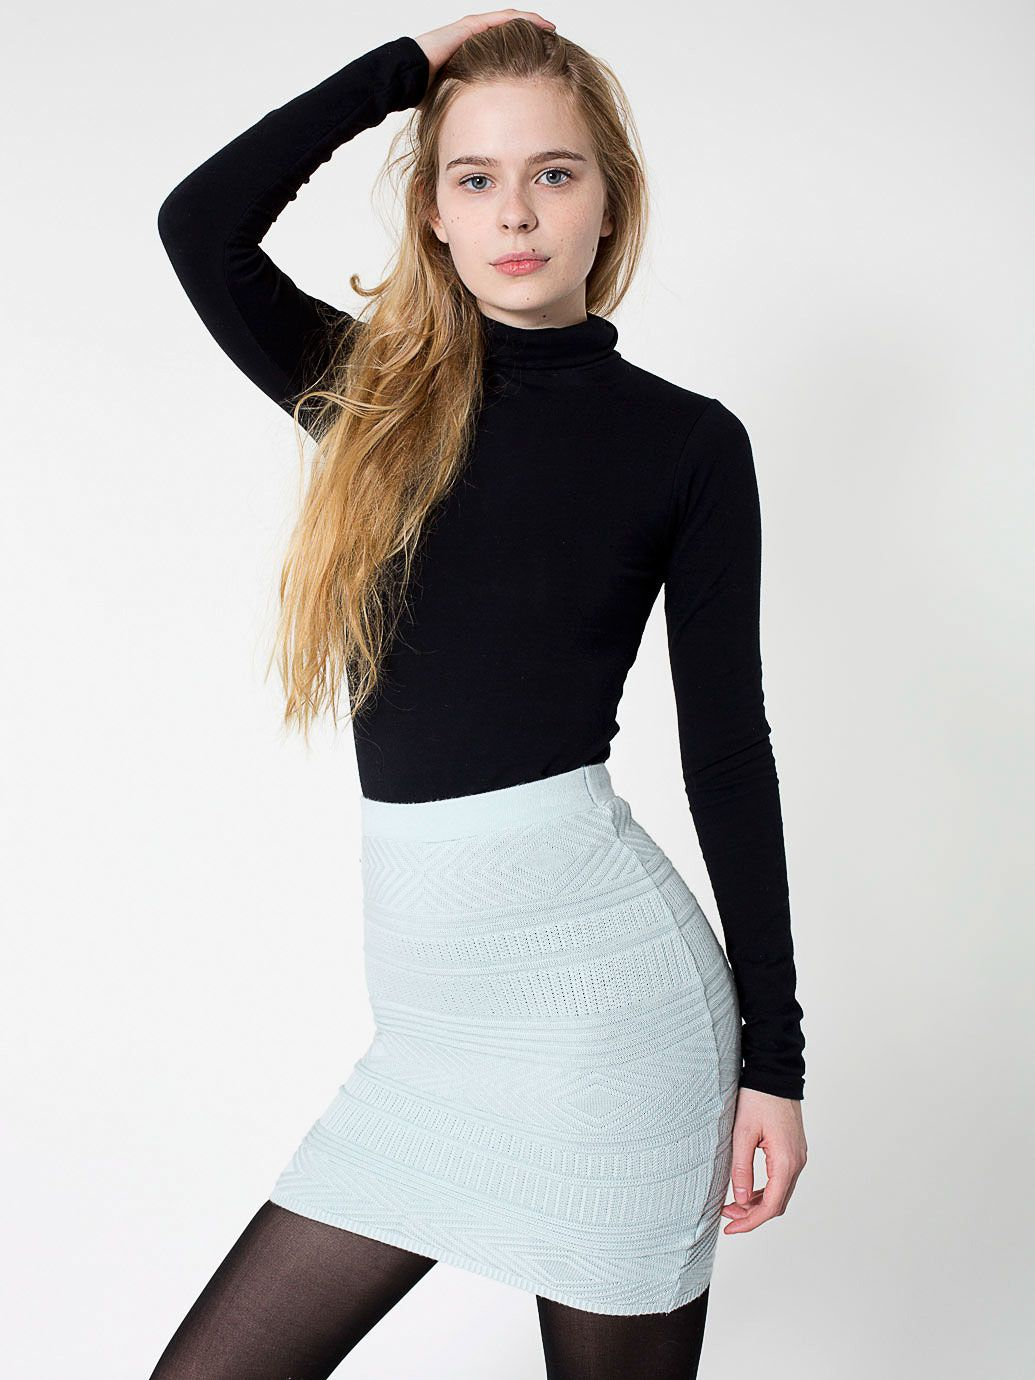 shop american apparel free shipping for orders